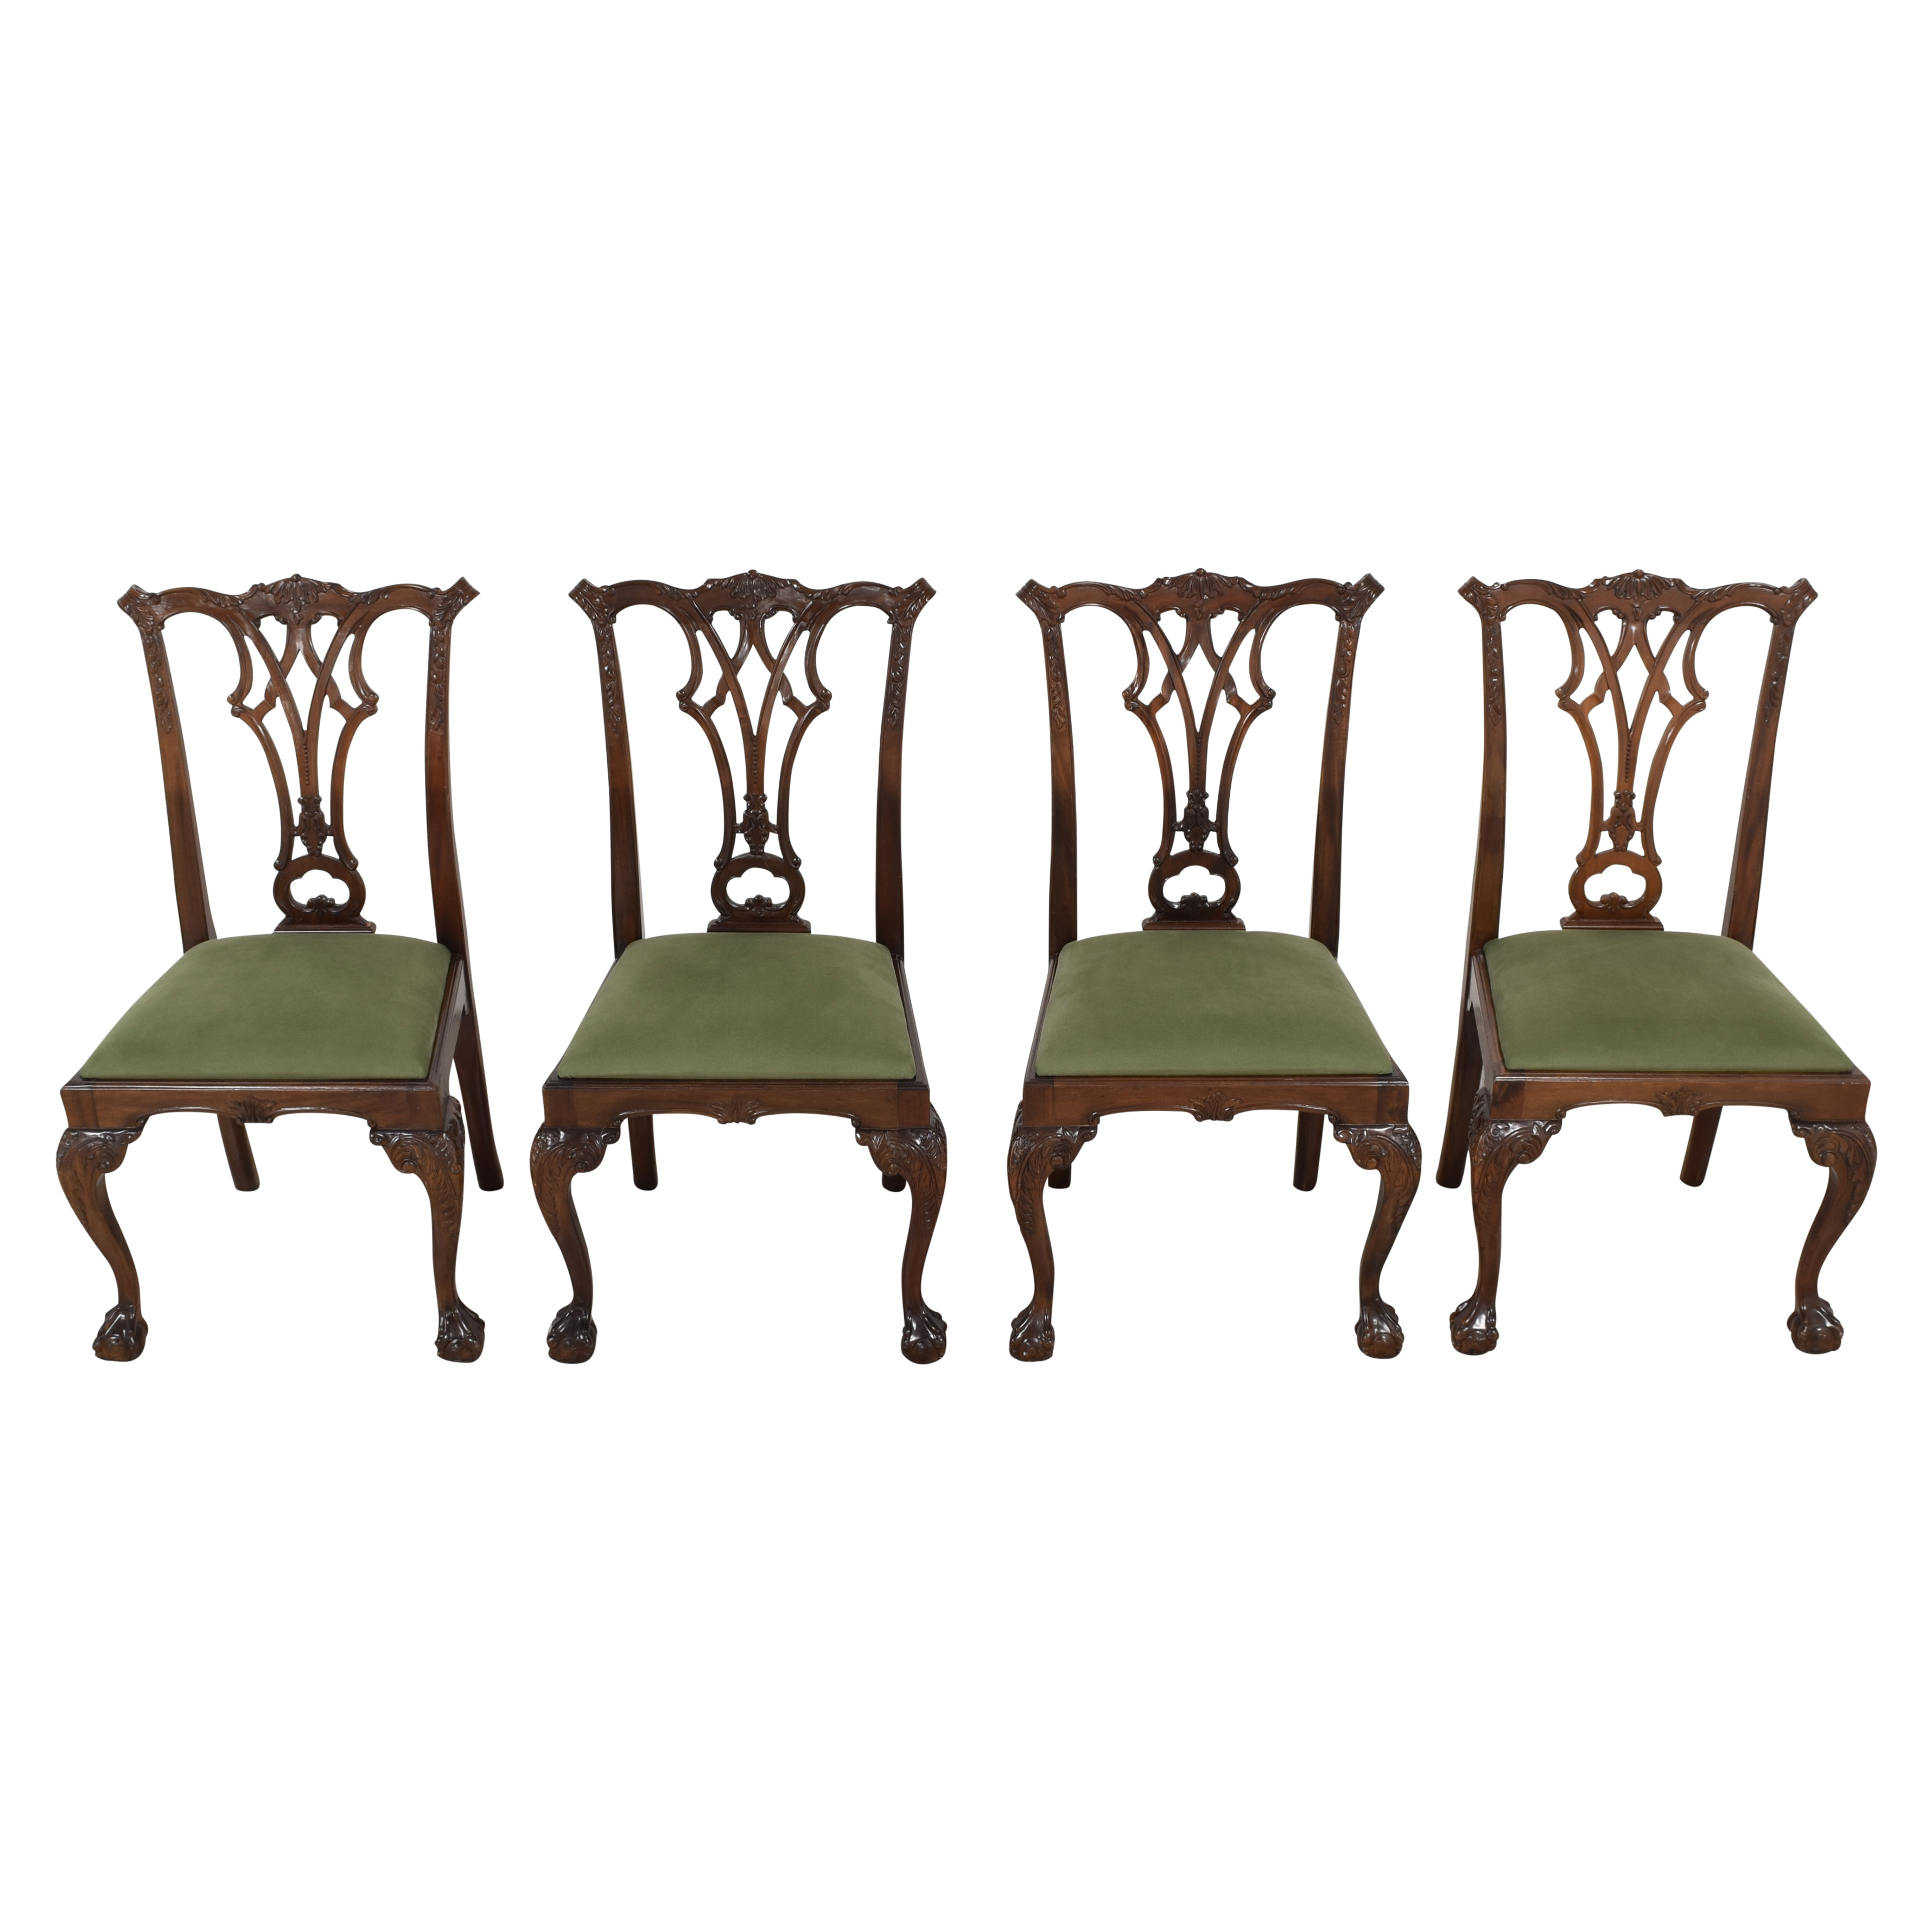 Greenbaum Interiors Queen Anne Style Dining Chairs price